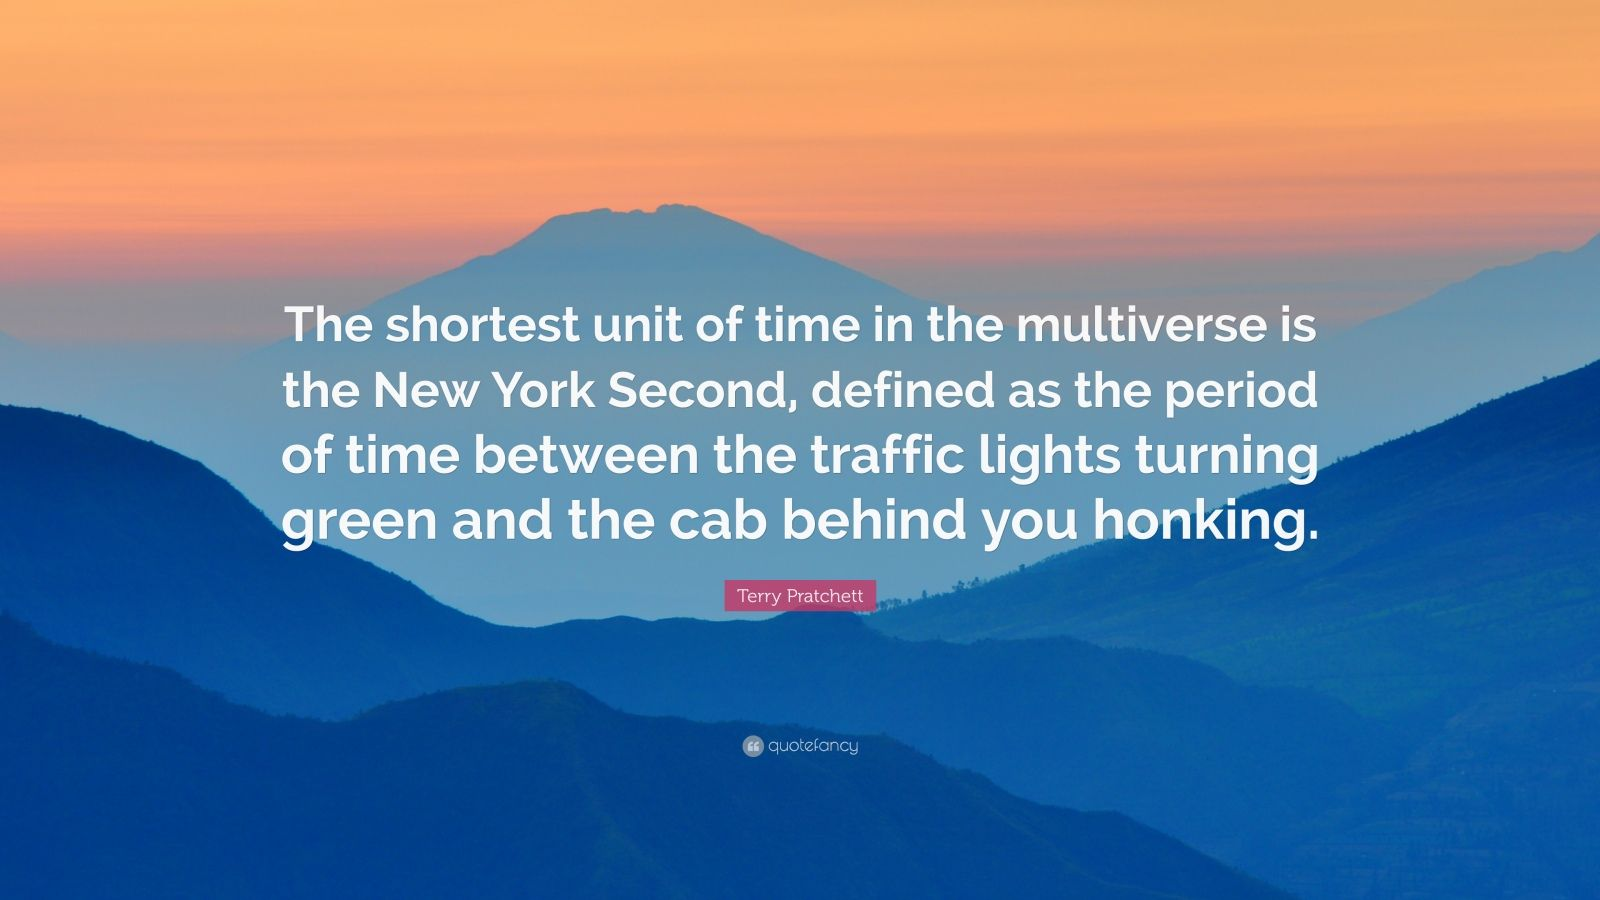 """Terry Pratchett Quote: """"The shortest unit of time in the multiverse is the New York Second, defined as the period of time between the traffic lights turning green and the cab behind you honking."""""""